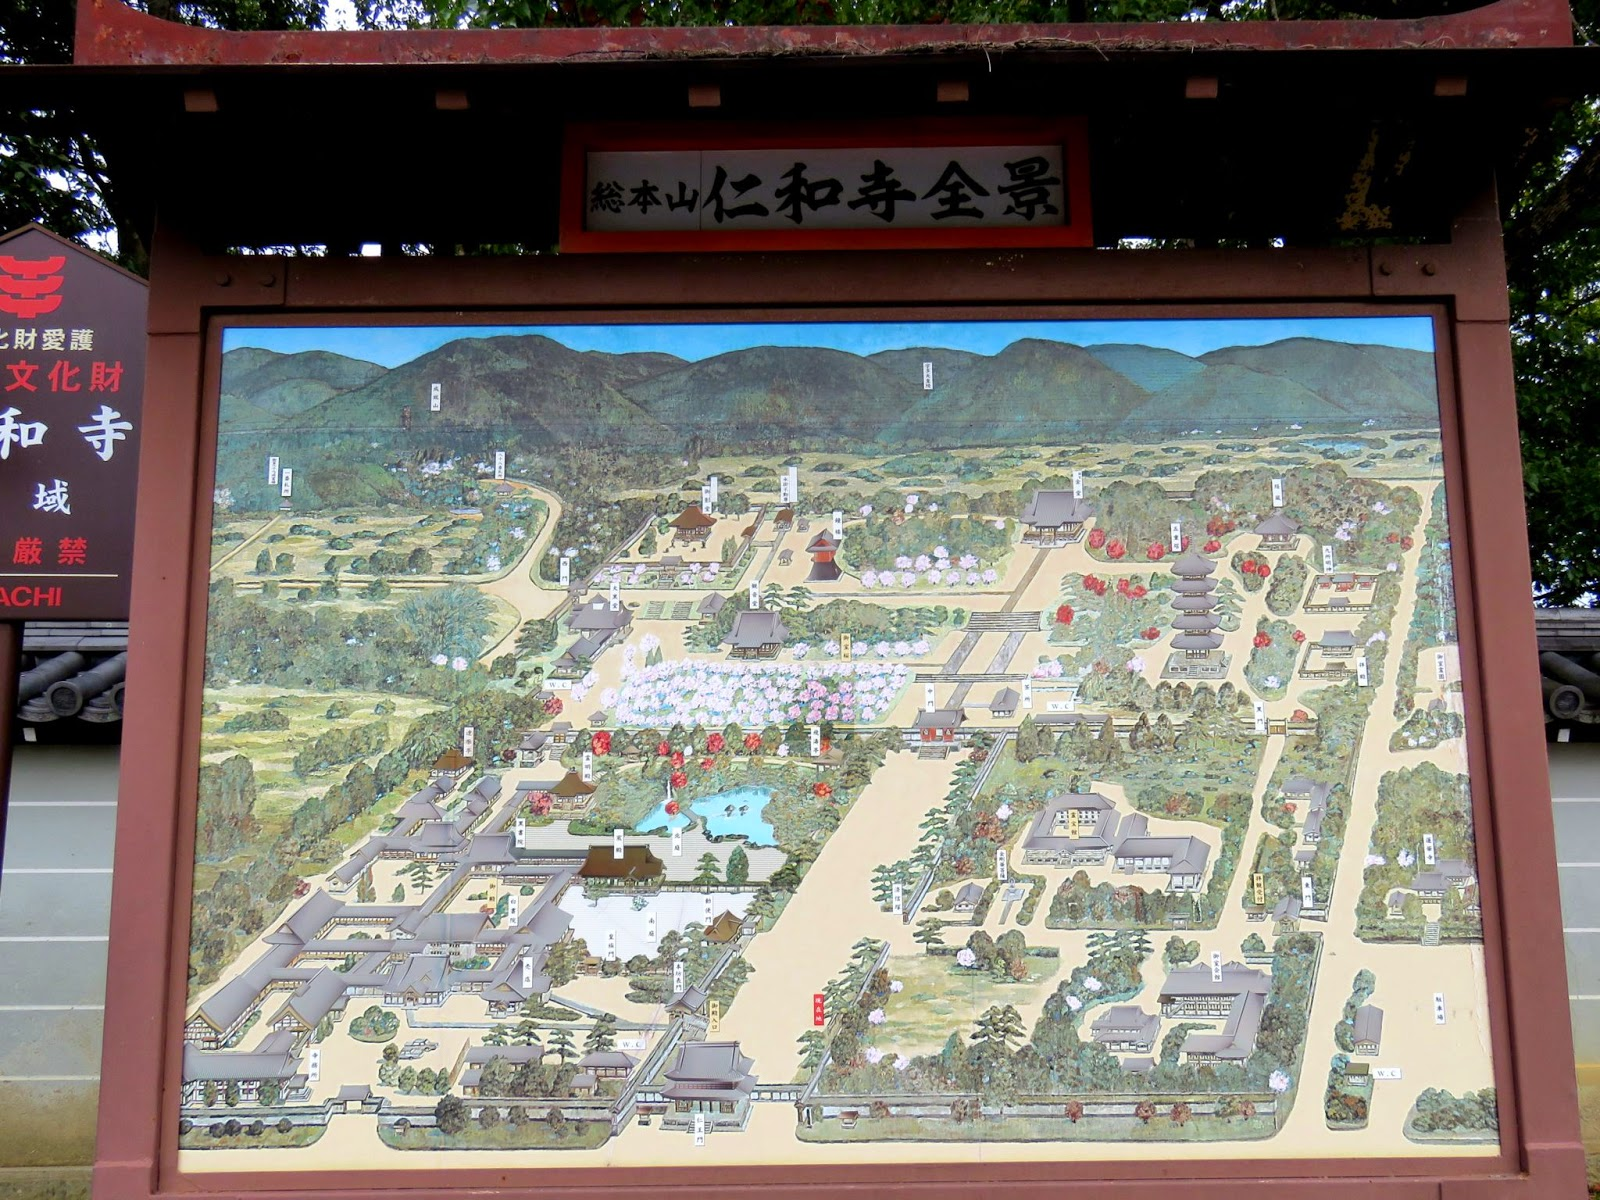 Aniccasight an ancient imperial temple ninna ji kyoto the oldest structures including its niormon front gate chuman inner gate 5 storeys pagoda and kondo main shrine were all dated back to early 1600s gumiabroncs Gallery